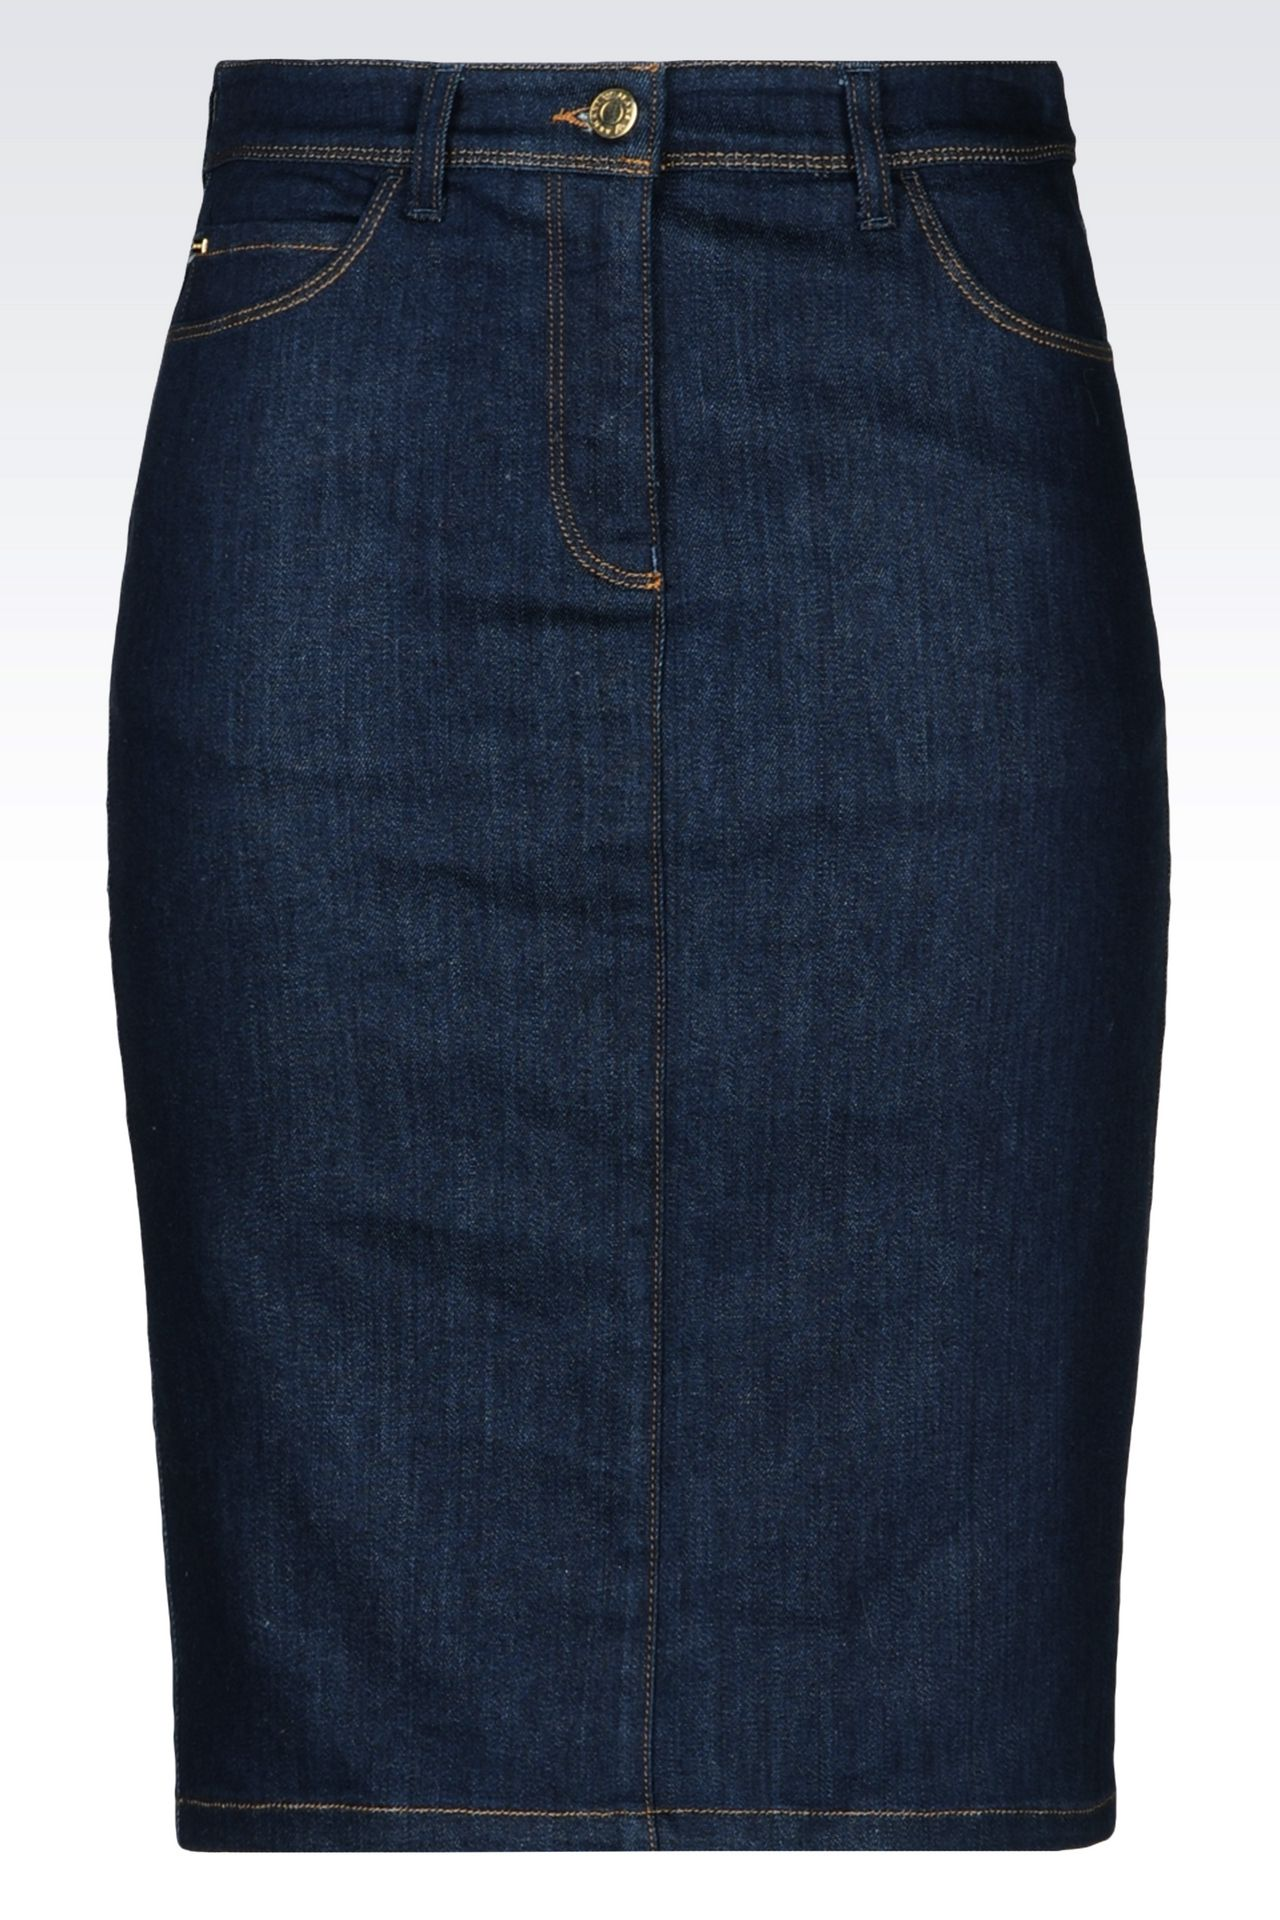 Armani Jeans Women DENIM SKIRT, Cotton - Armani.com